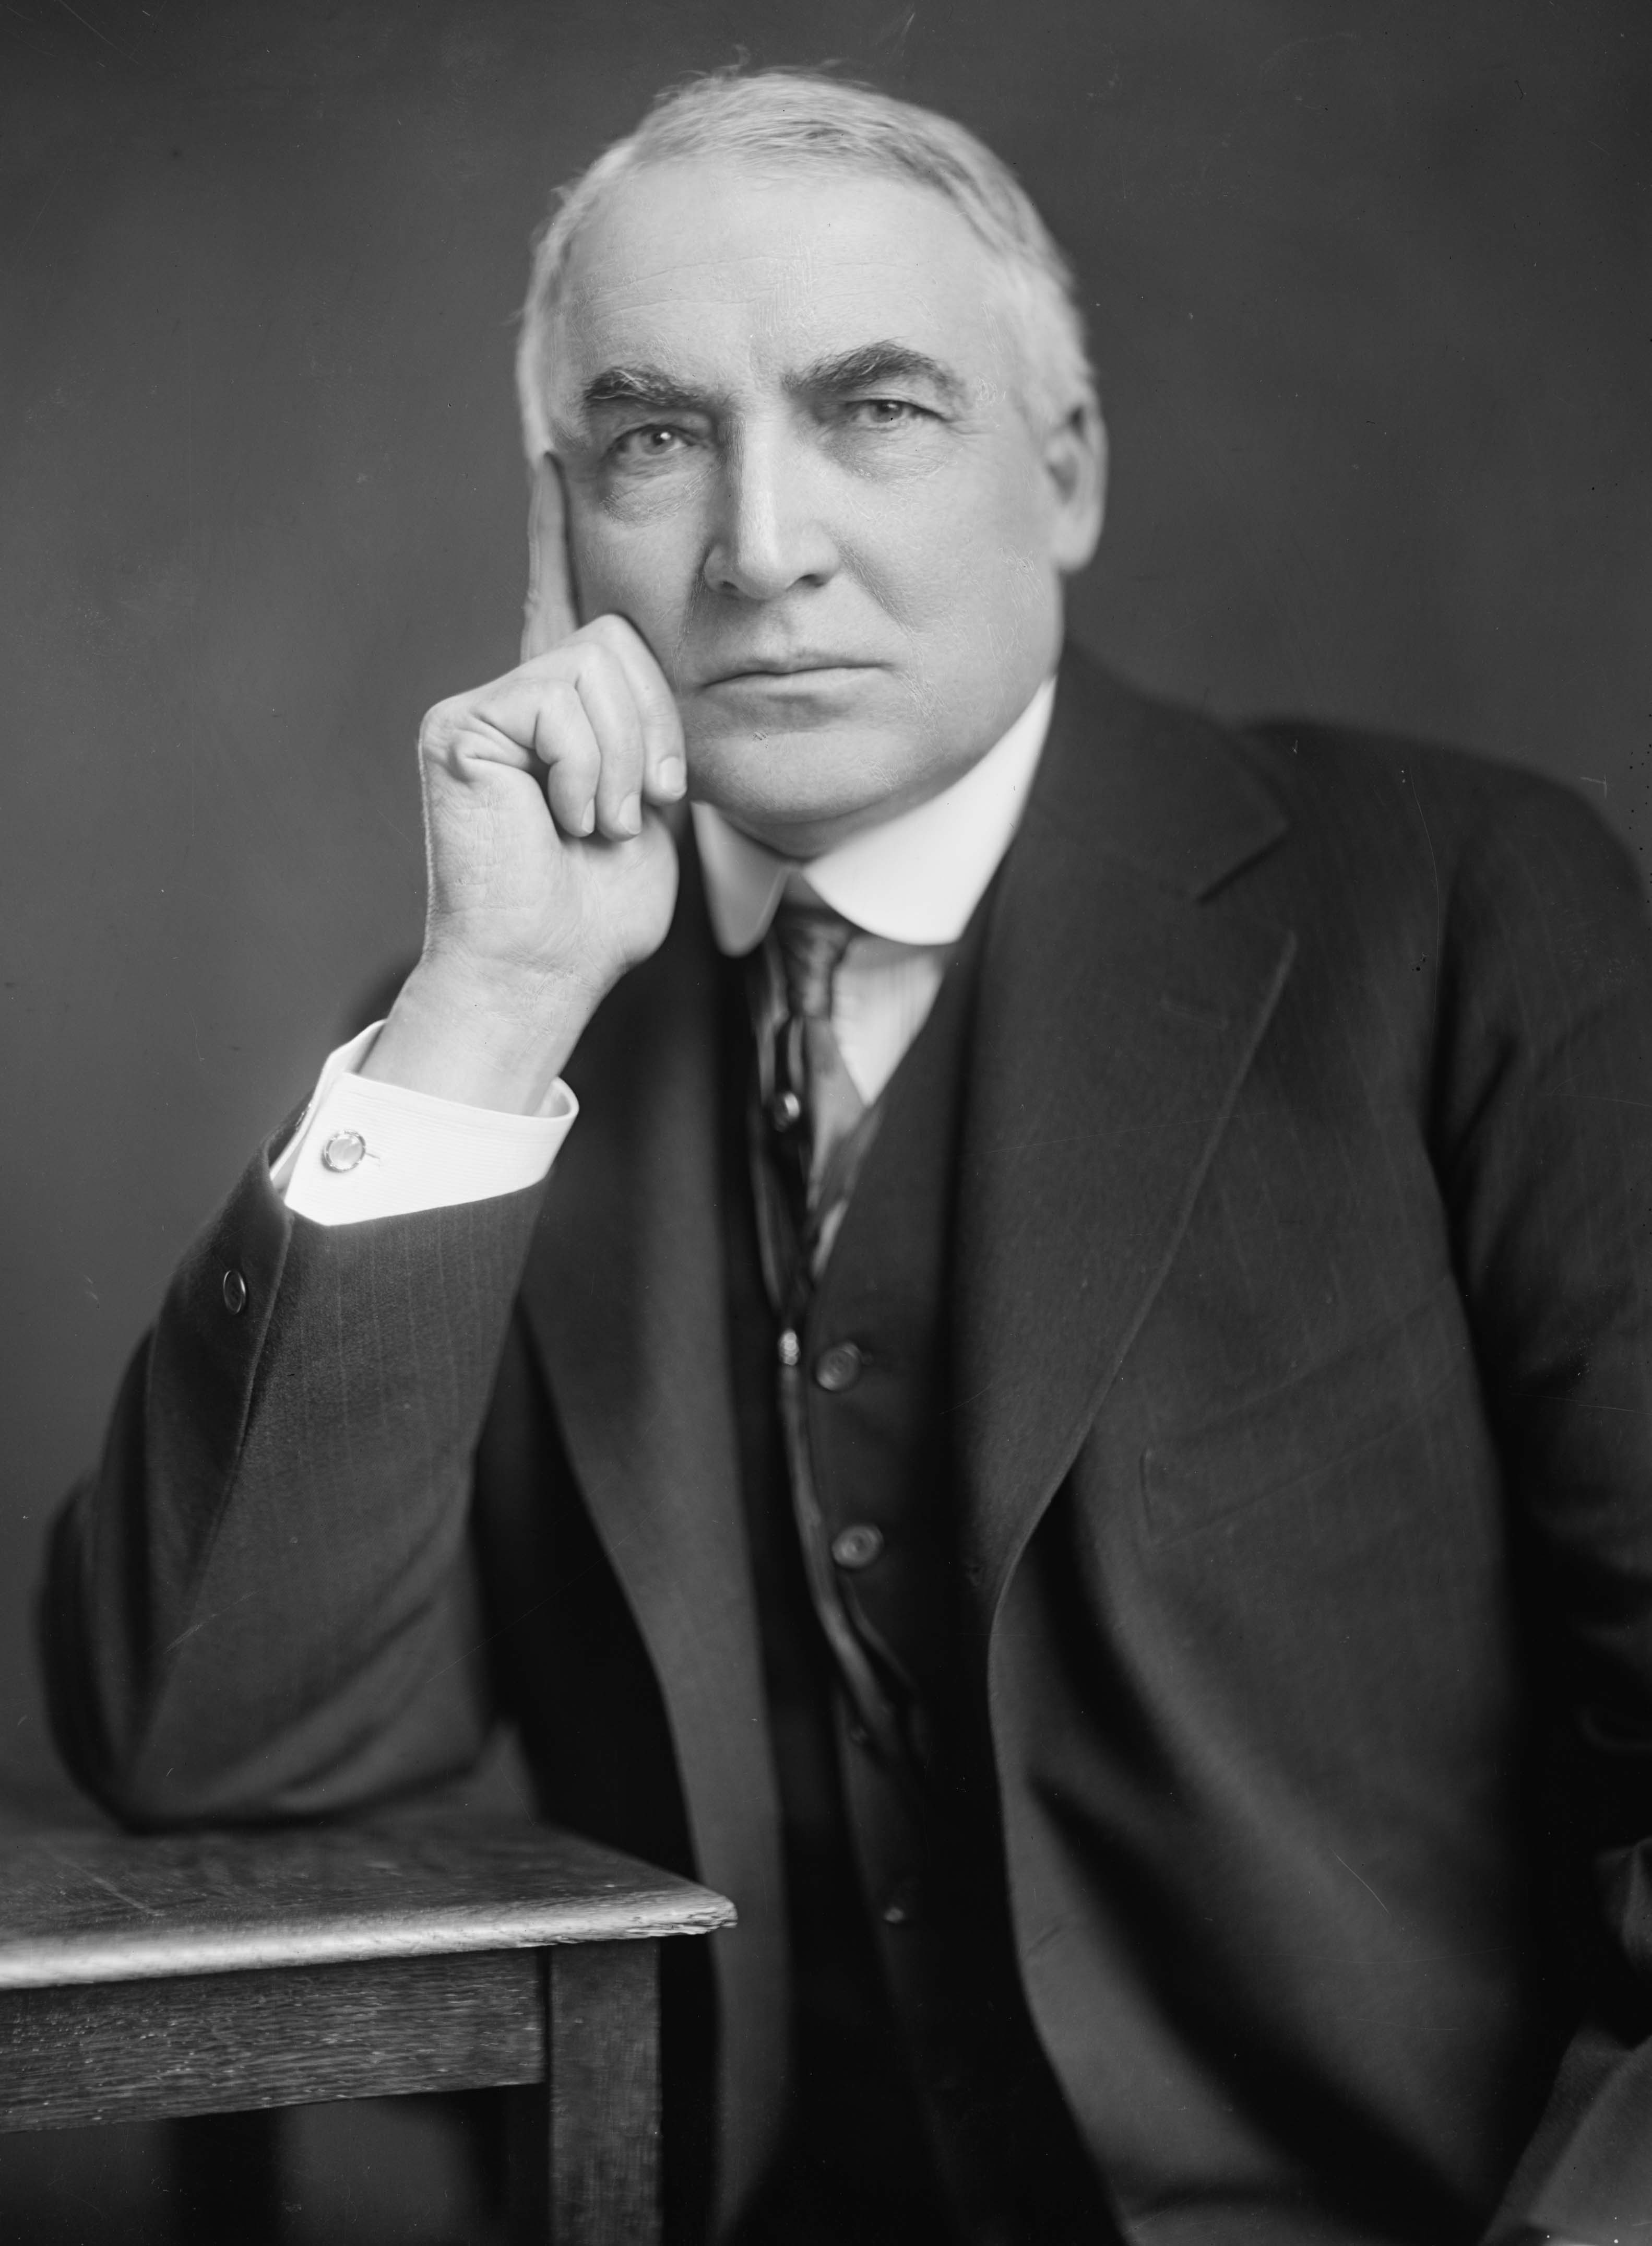 Photograph of Warren G. Harding